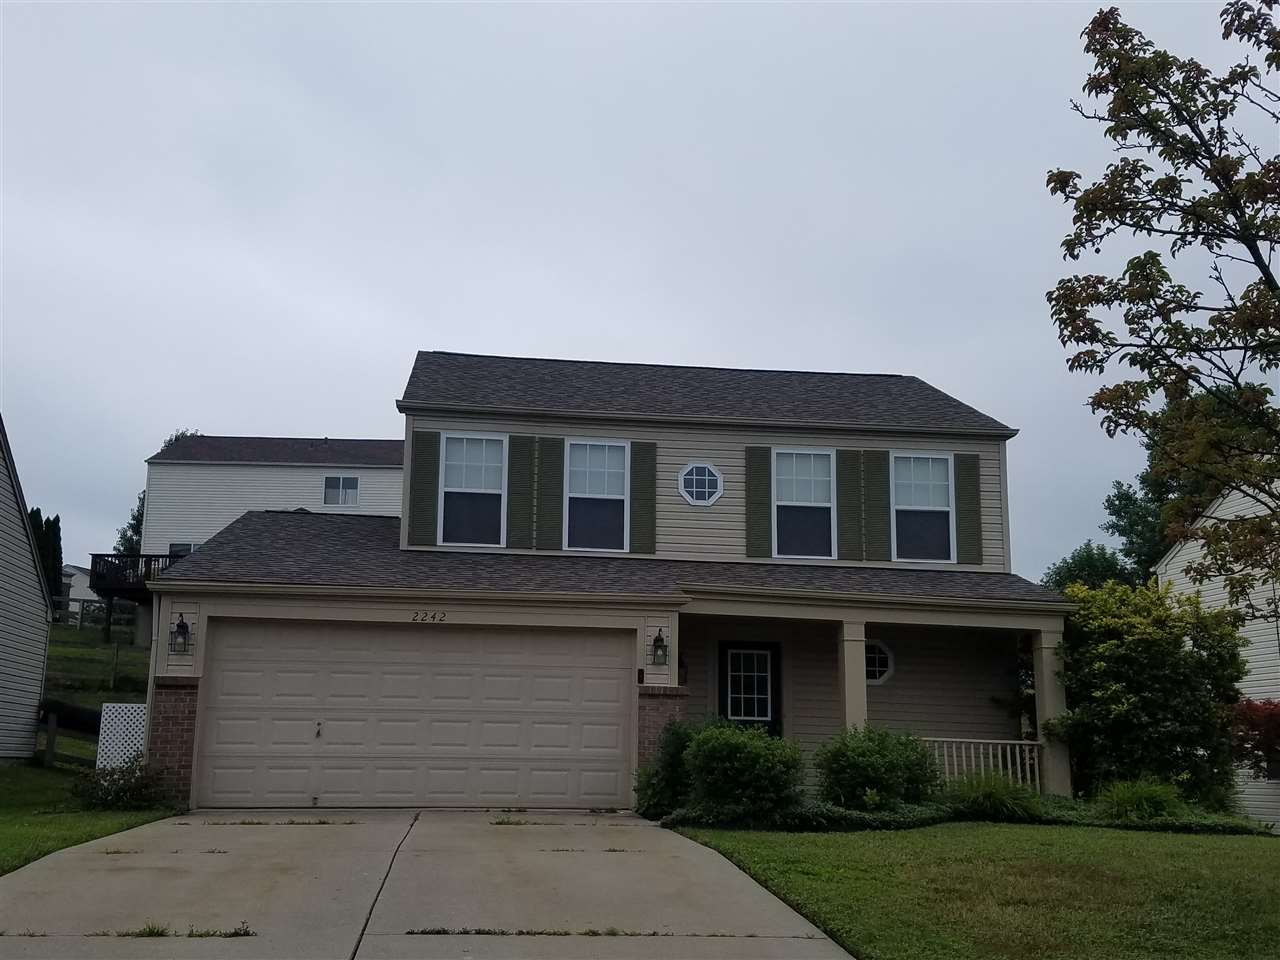 Photo 1 for 2242 Antoinette Way W Union, KY 41091